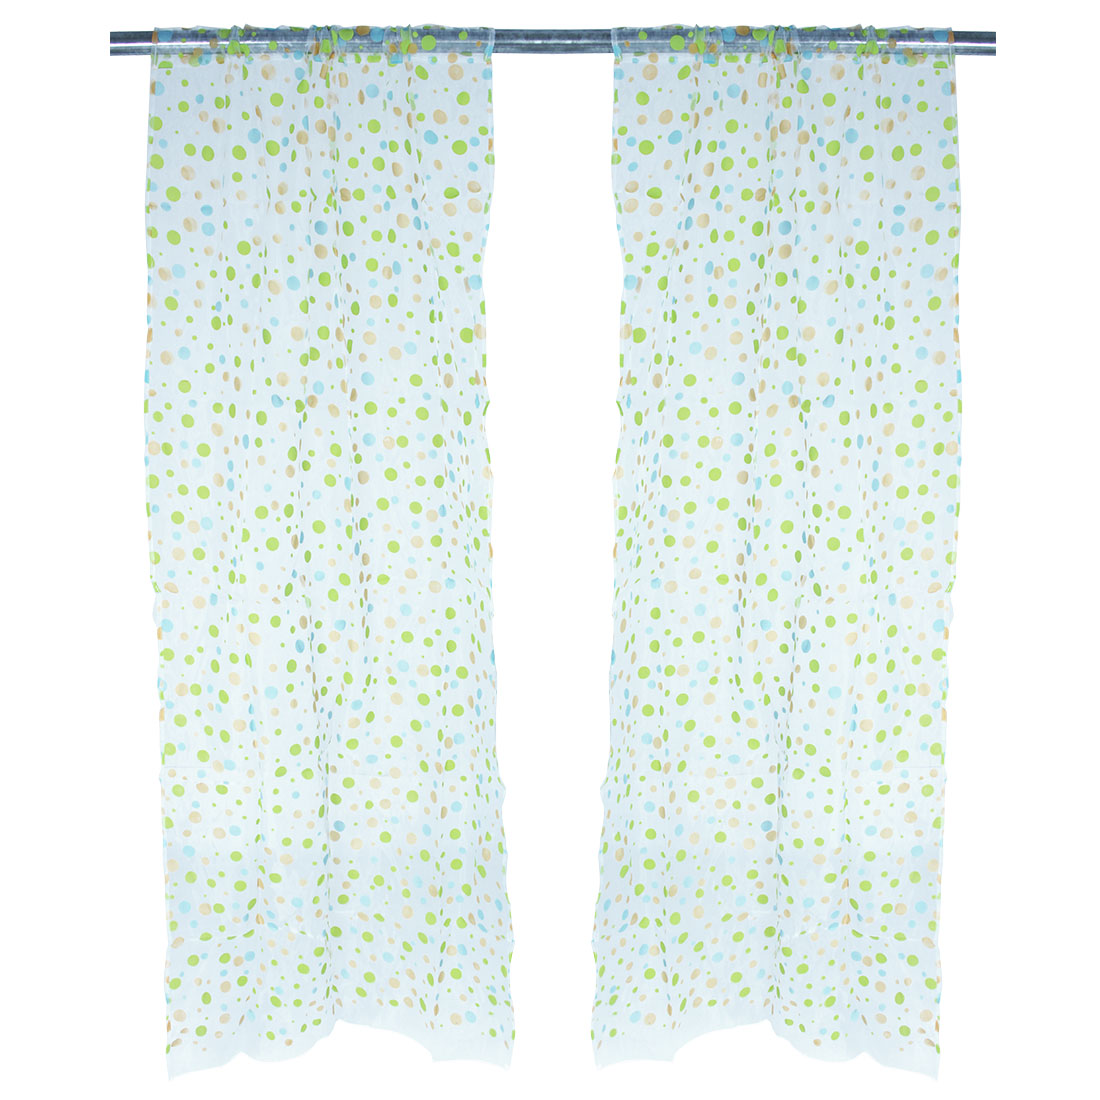 Household Polyester Dots Pattern Panel Window Sheer Curtain Green 100 x 200cm